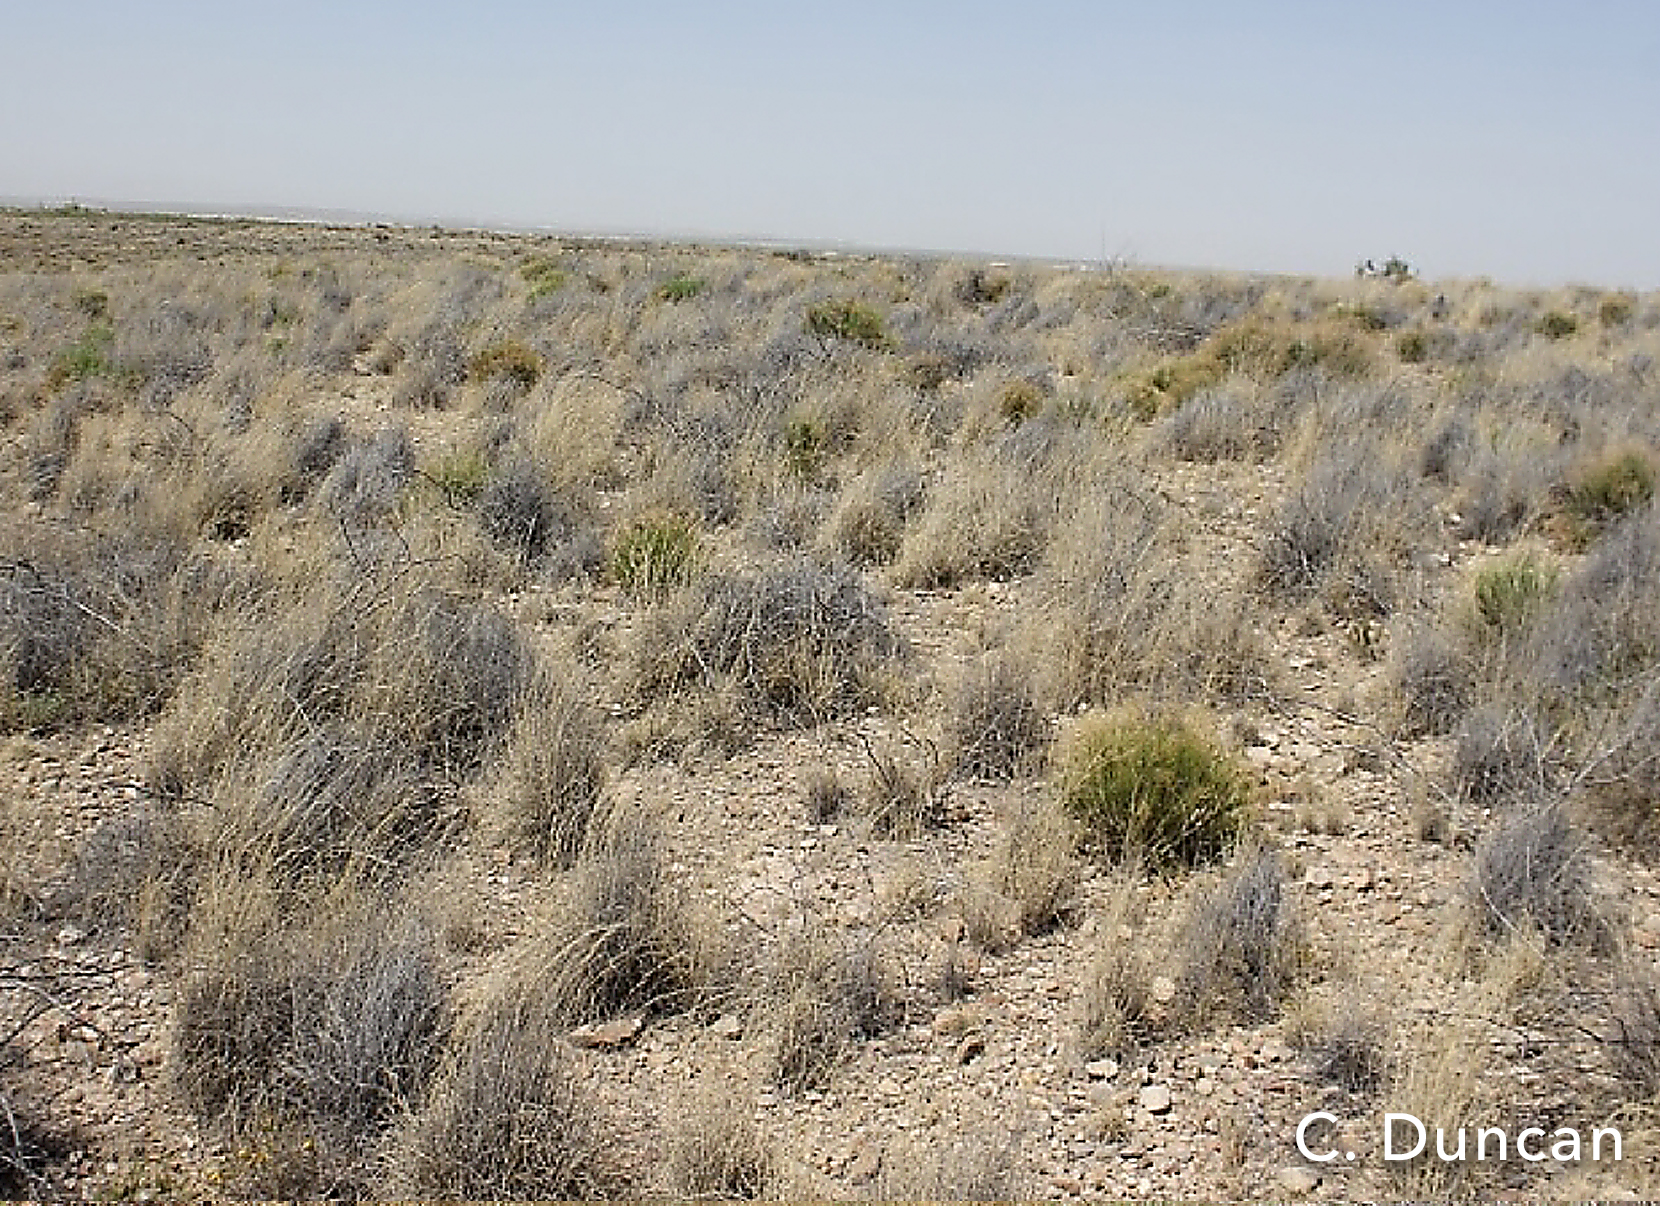 Creosote- and mesquite-dominated upland (top) compared to adjacent area treated with Spike® 20P herbicide at 0.75 pounds per acre (above). Photo above is taken about 10 years after herbicide application.